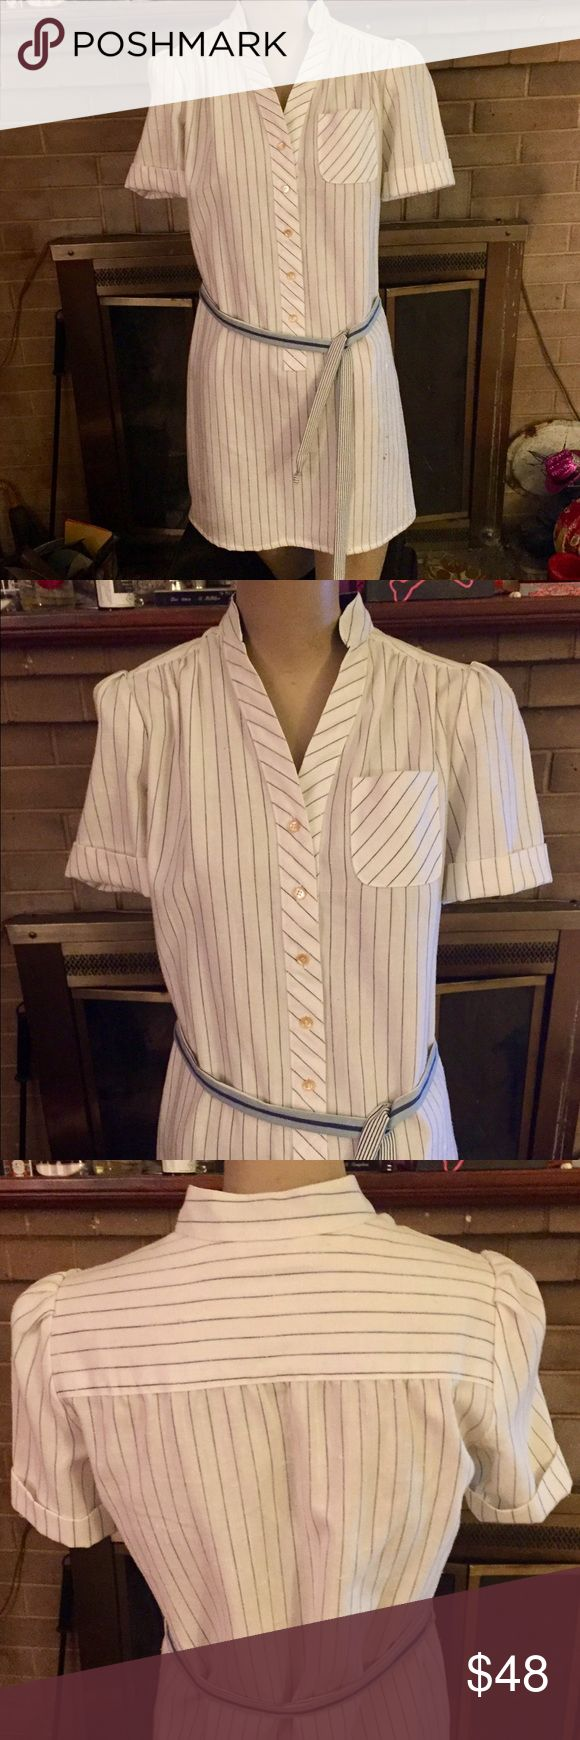 Vintage 80s baseball striped shirt dress w/belt Cutest shirt dress ever! This true vintage 80s dress is made for opening day or just a fun hello to springtime! White linen with blue pinstripes Nehru collar, half button down front with removable contrast striped belt. Size approx XS/S. Perfect condition; looks to have never been worn! Vintage Dresses